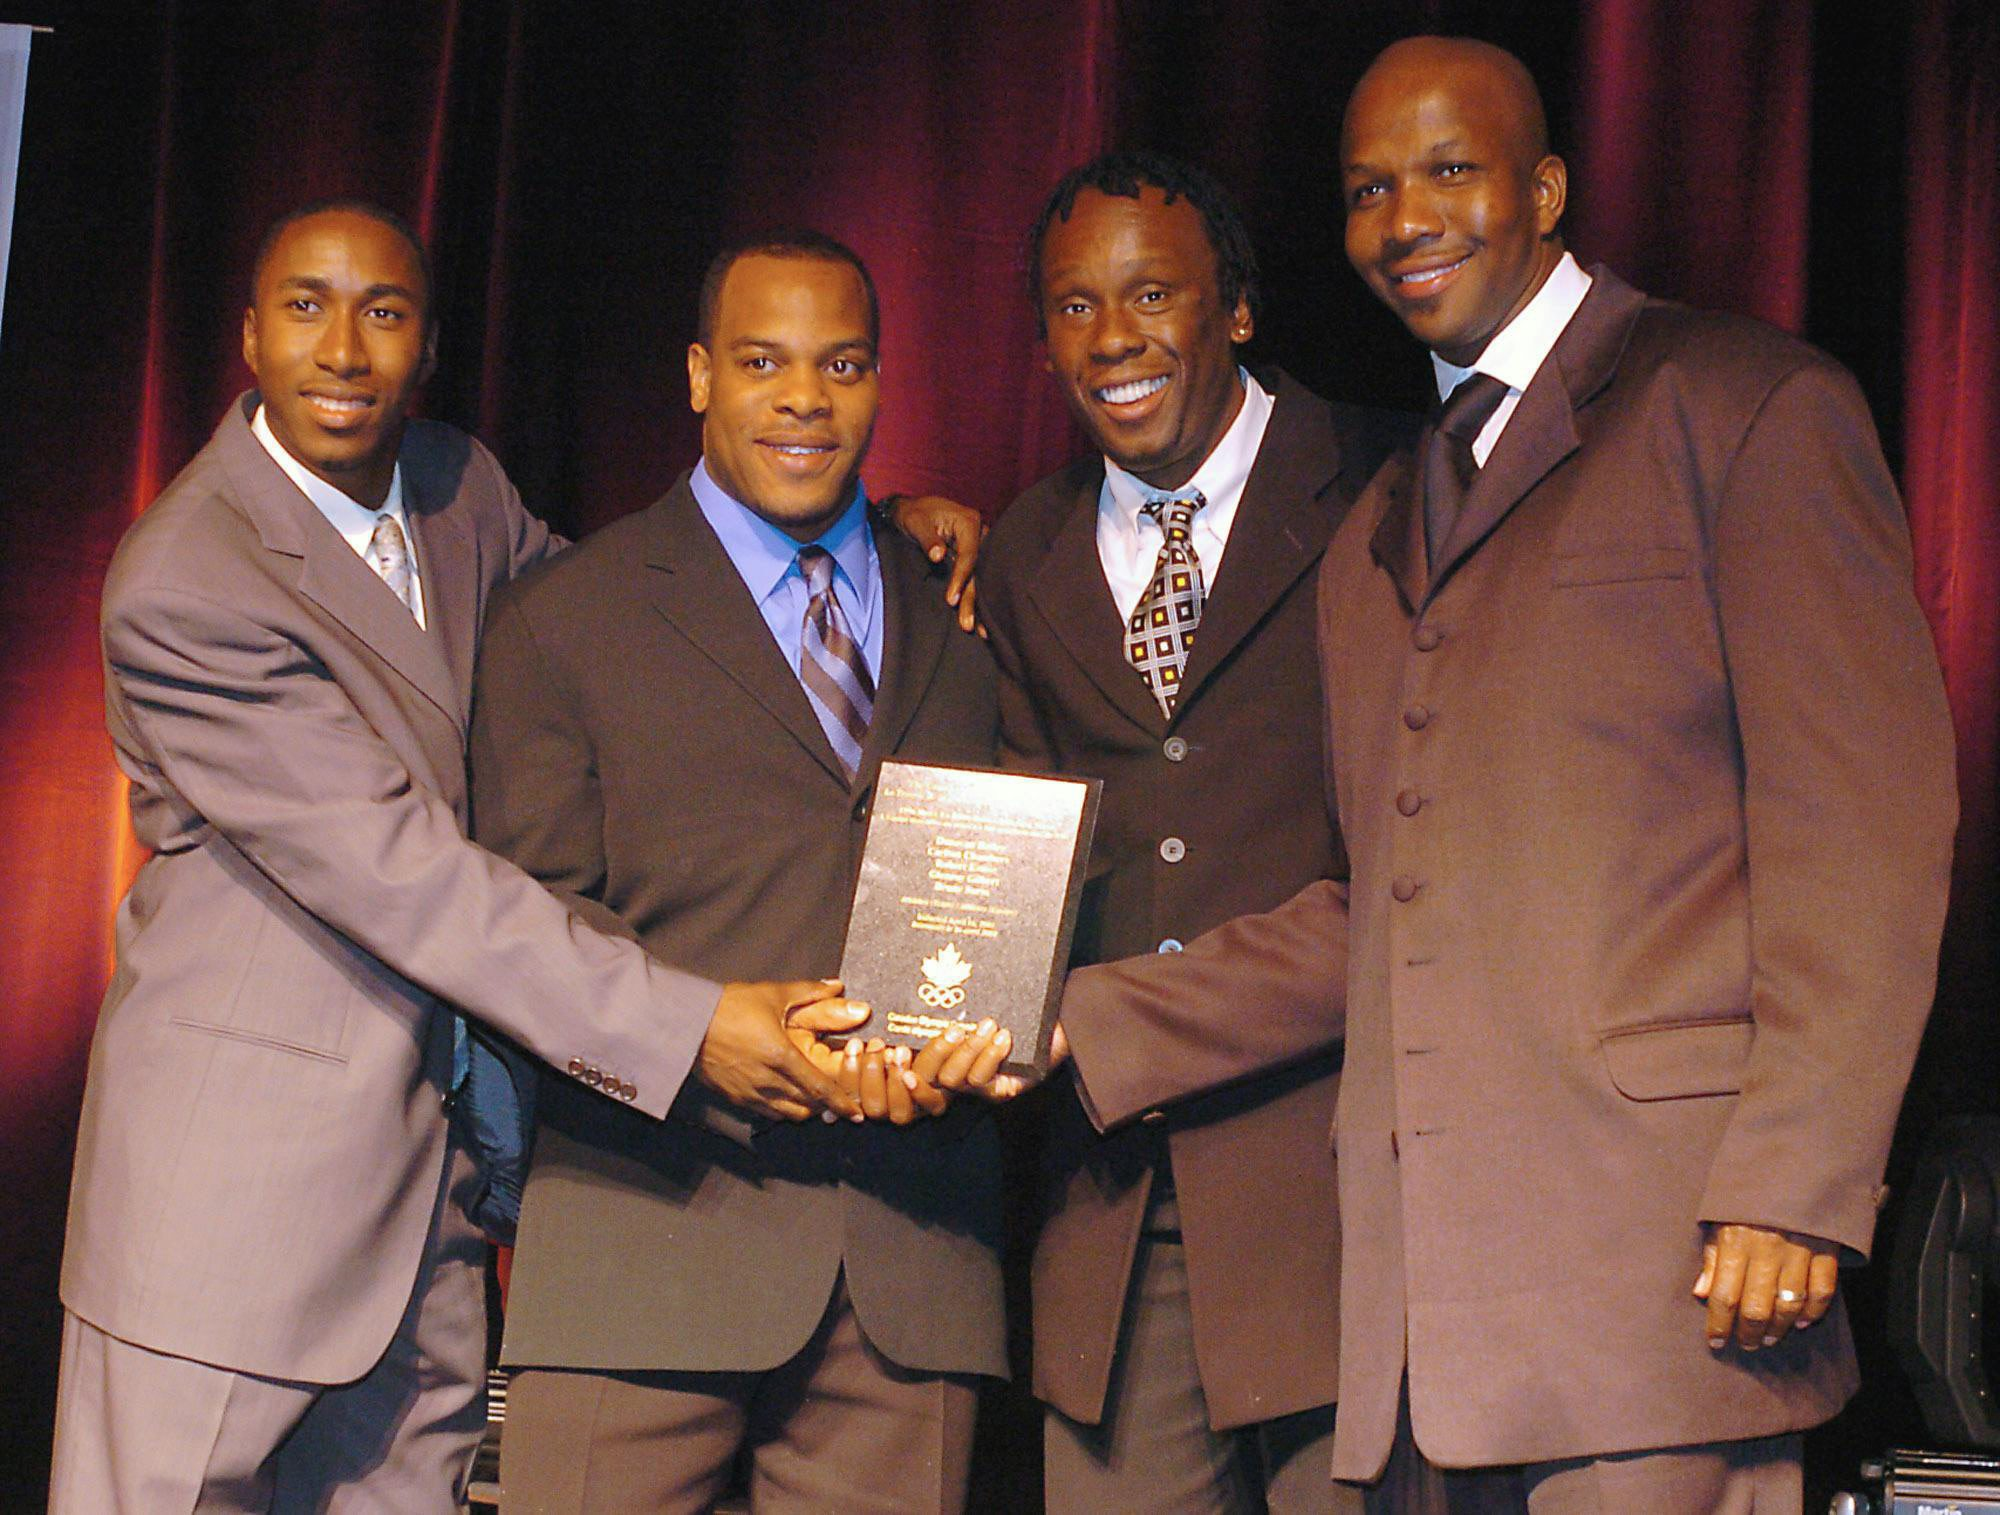 New inductees into Canadian Hall of Fame, members of the 400m olympic race, Robert Esmie, Carlton Chambers, Bruny Surin and Donovan Bailey during a ceremony in Montreal, Friday April 16, 2004.